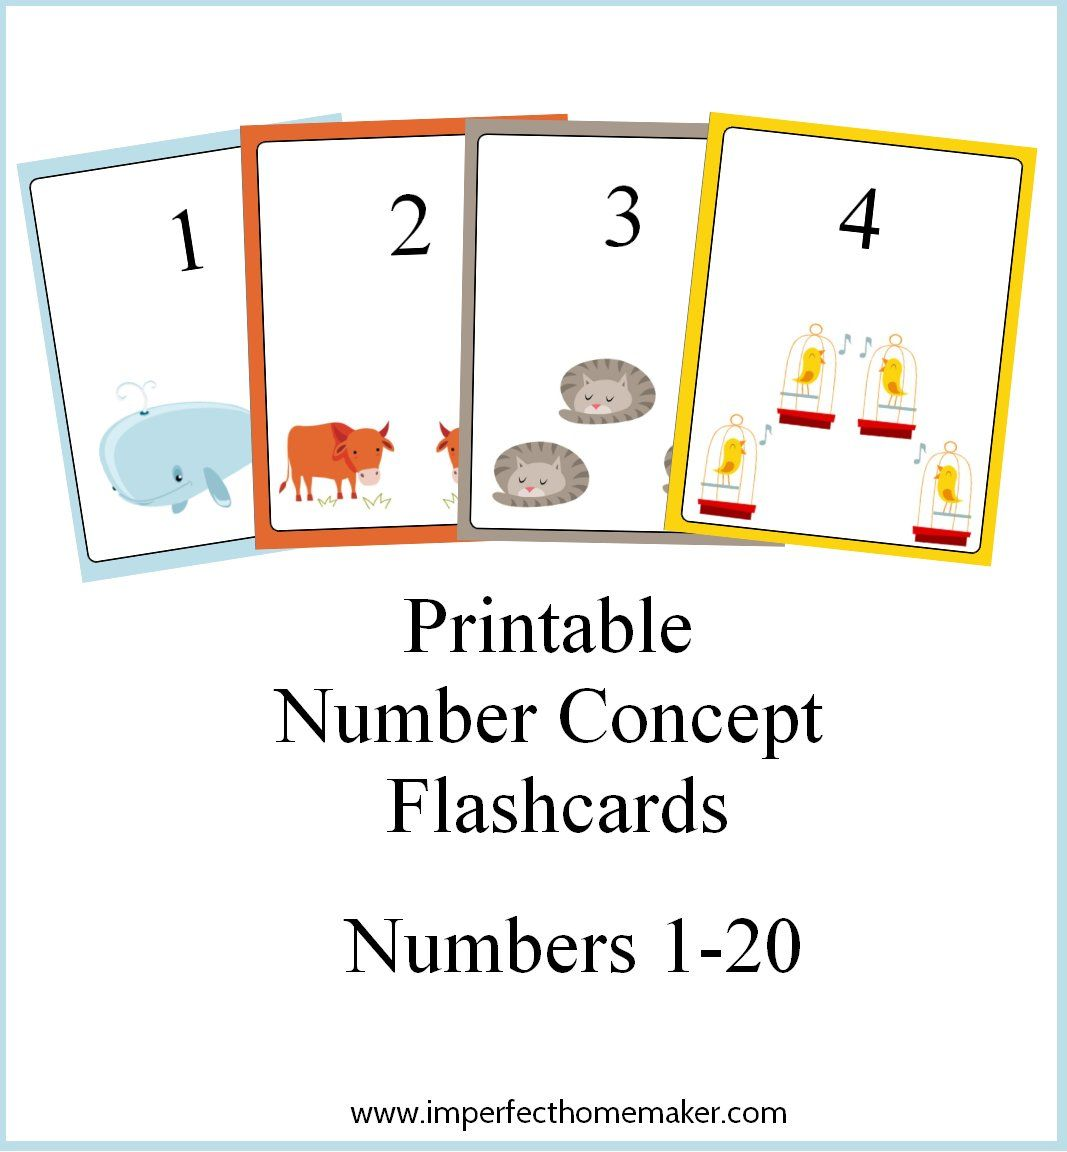 Printable Number Concept Flashcards